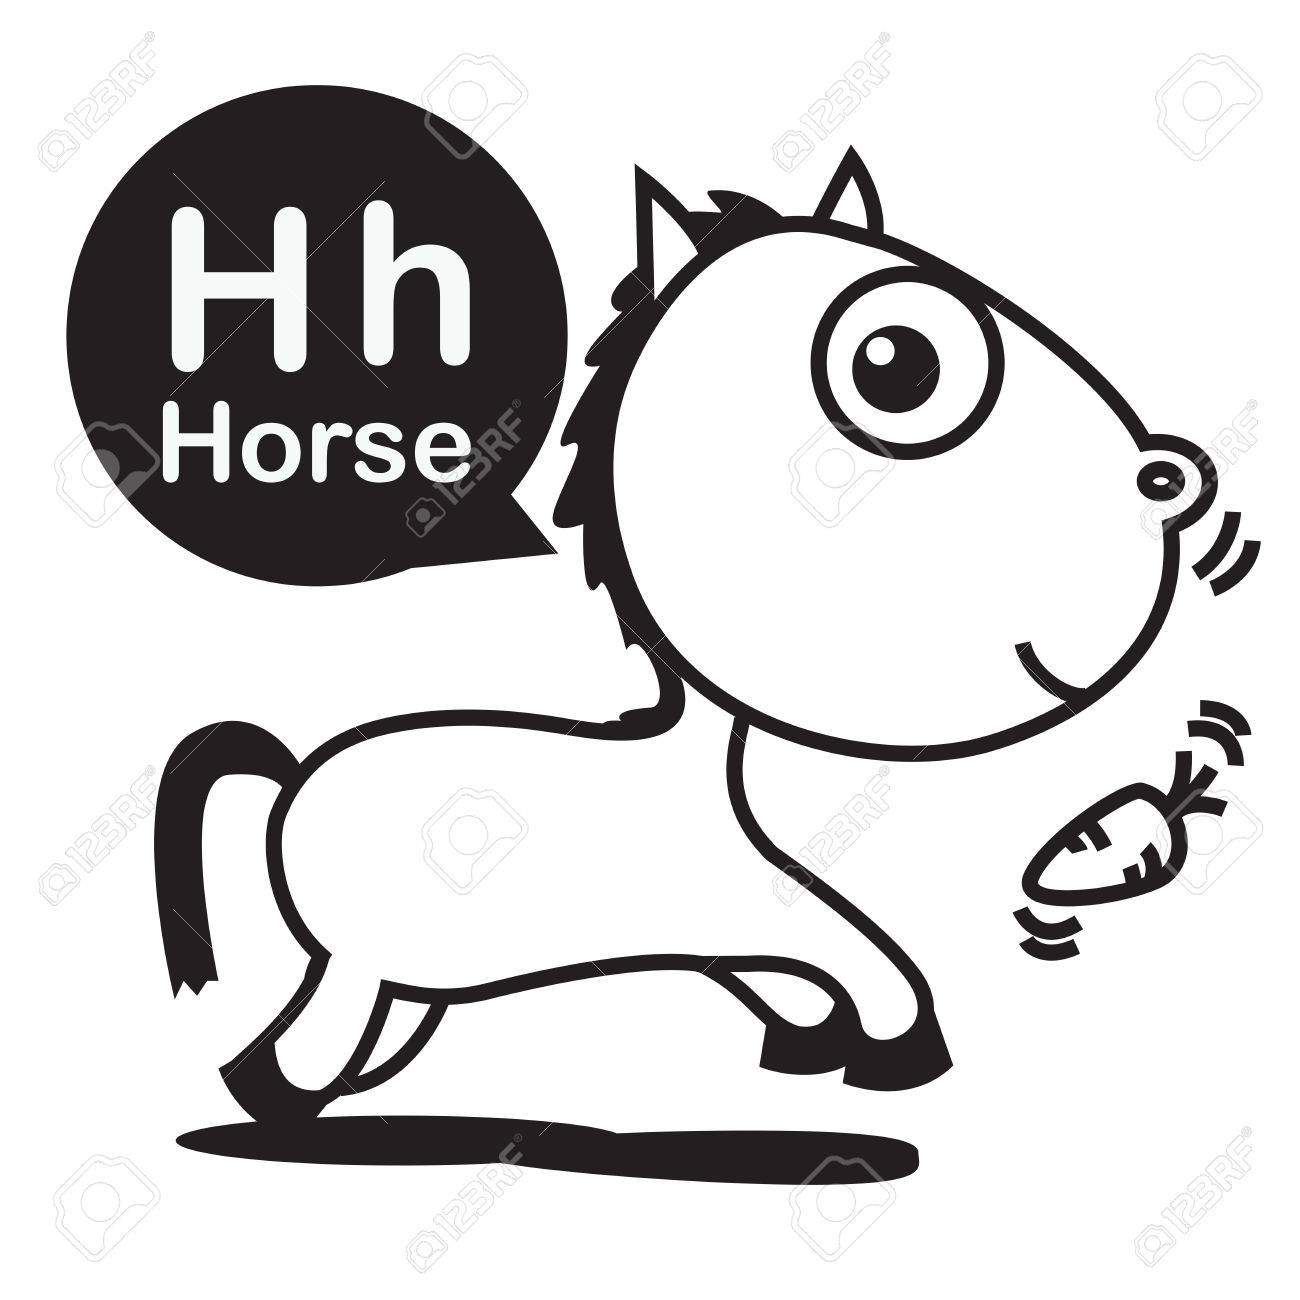 H Horse Cartoon And Alphabet For Children To Learning Coloring Page Vector Illustration Eps10 Stock